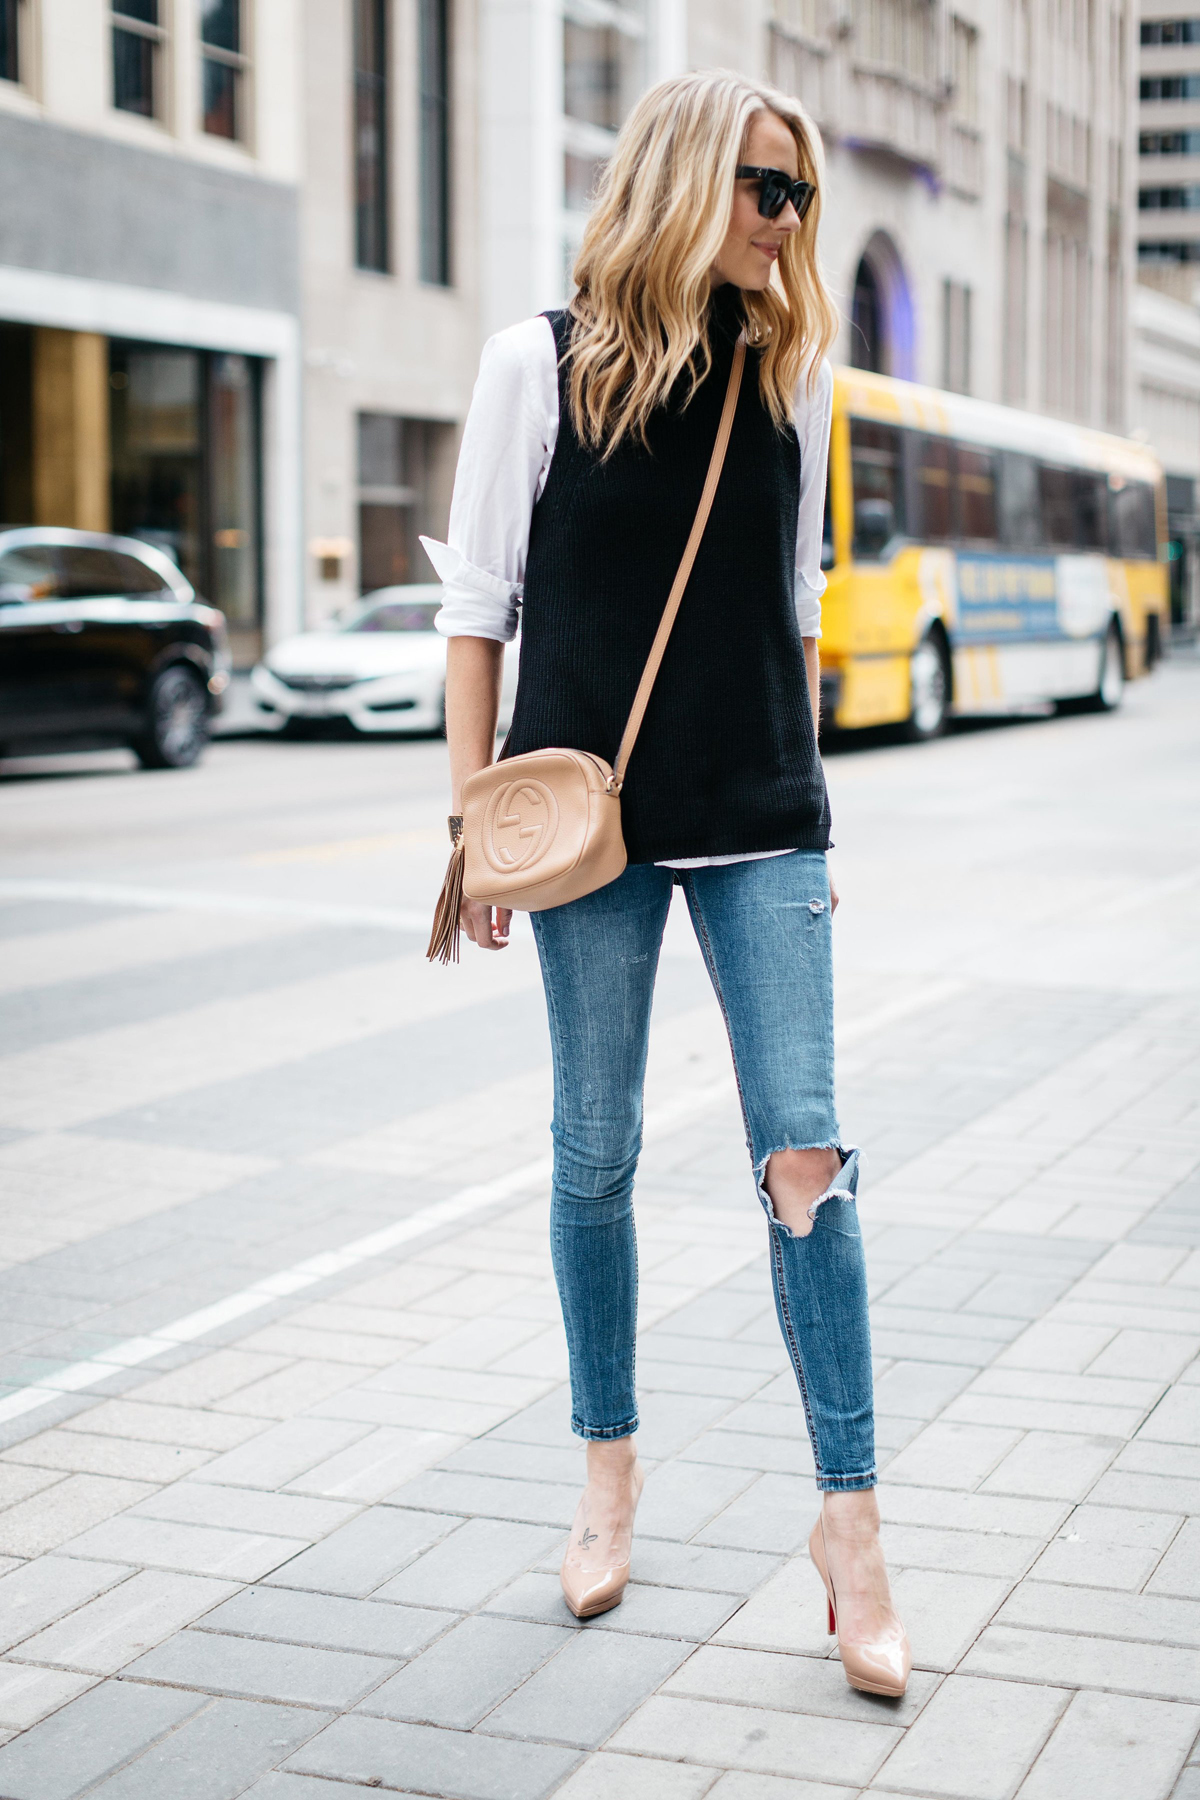 Fall Outfit, Winter Outfit, White Button Down Shirt, Black Sleeveless Turtleneck Sweater, Denim Ripped Skinny Jeans, Gucci Soho Handbag, Nude Pumps